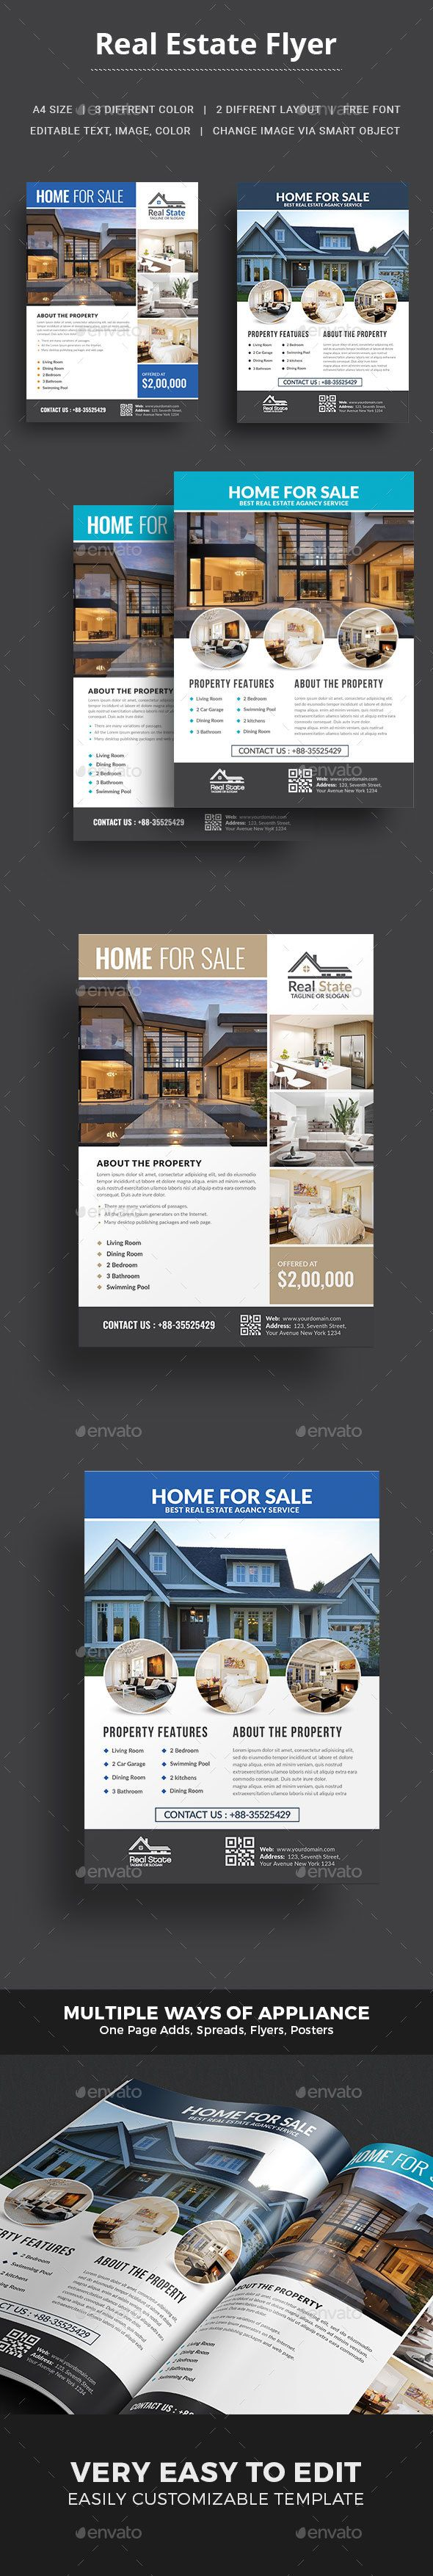 best ideas about real estate flyers real estate real estate flyer template